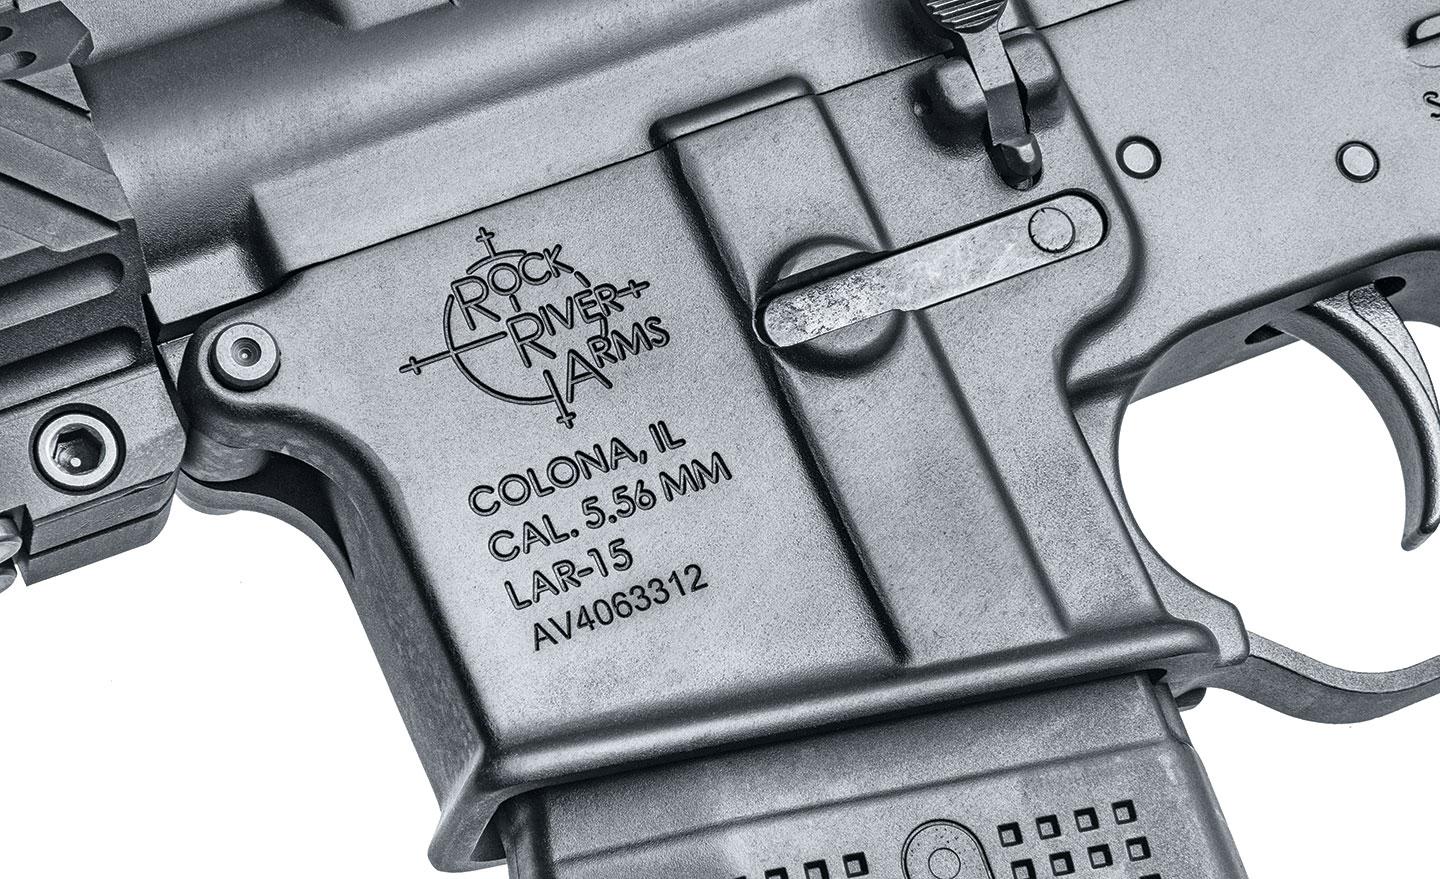 //content.osgnetworks.tv/gunsandammo/content/photos/Rock-River-Arms-Ath-V2-13